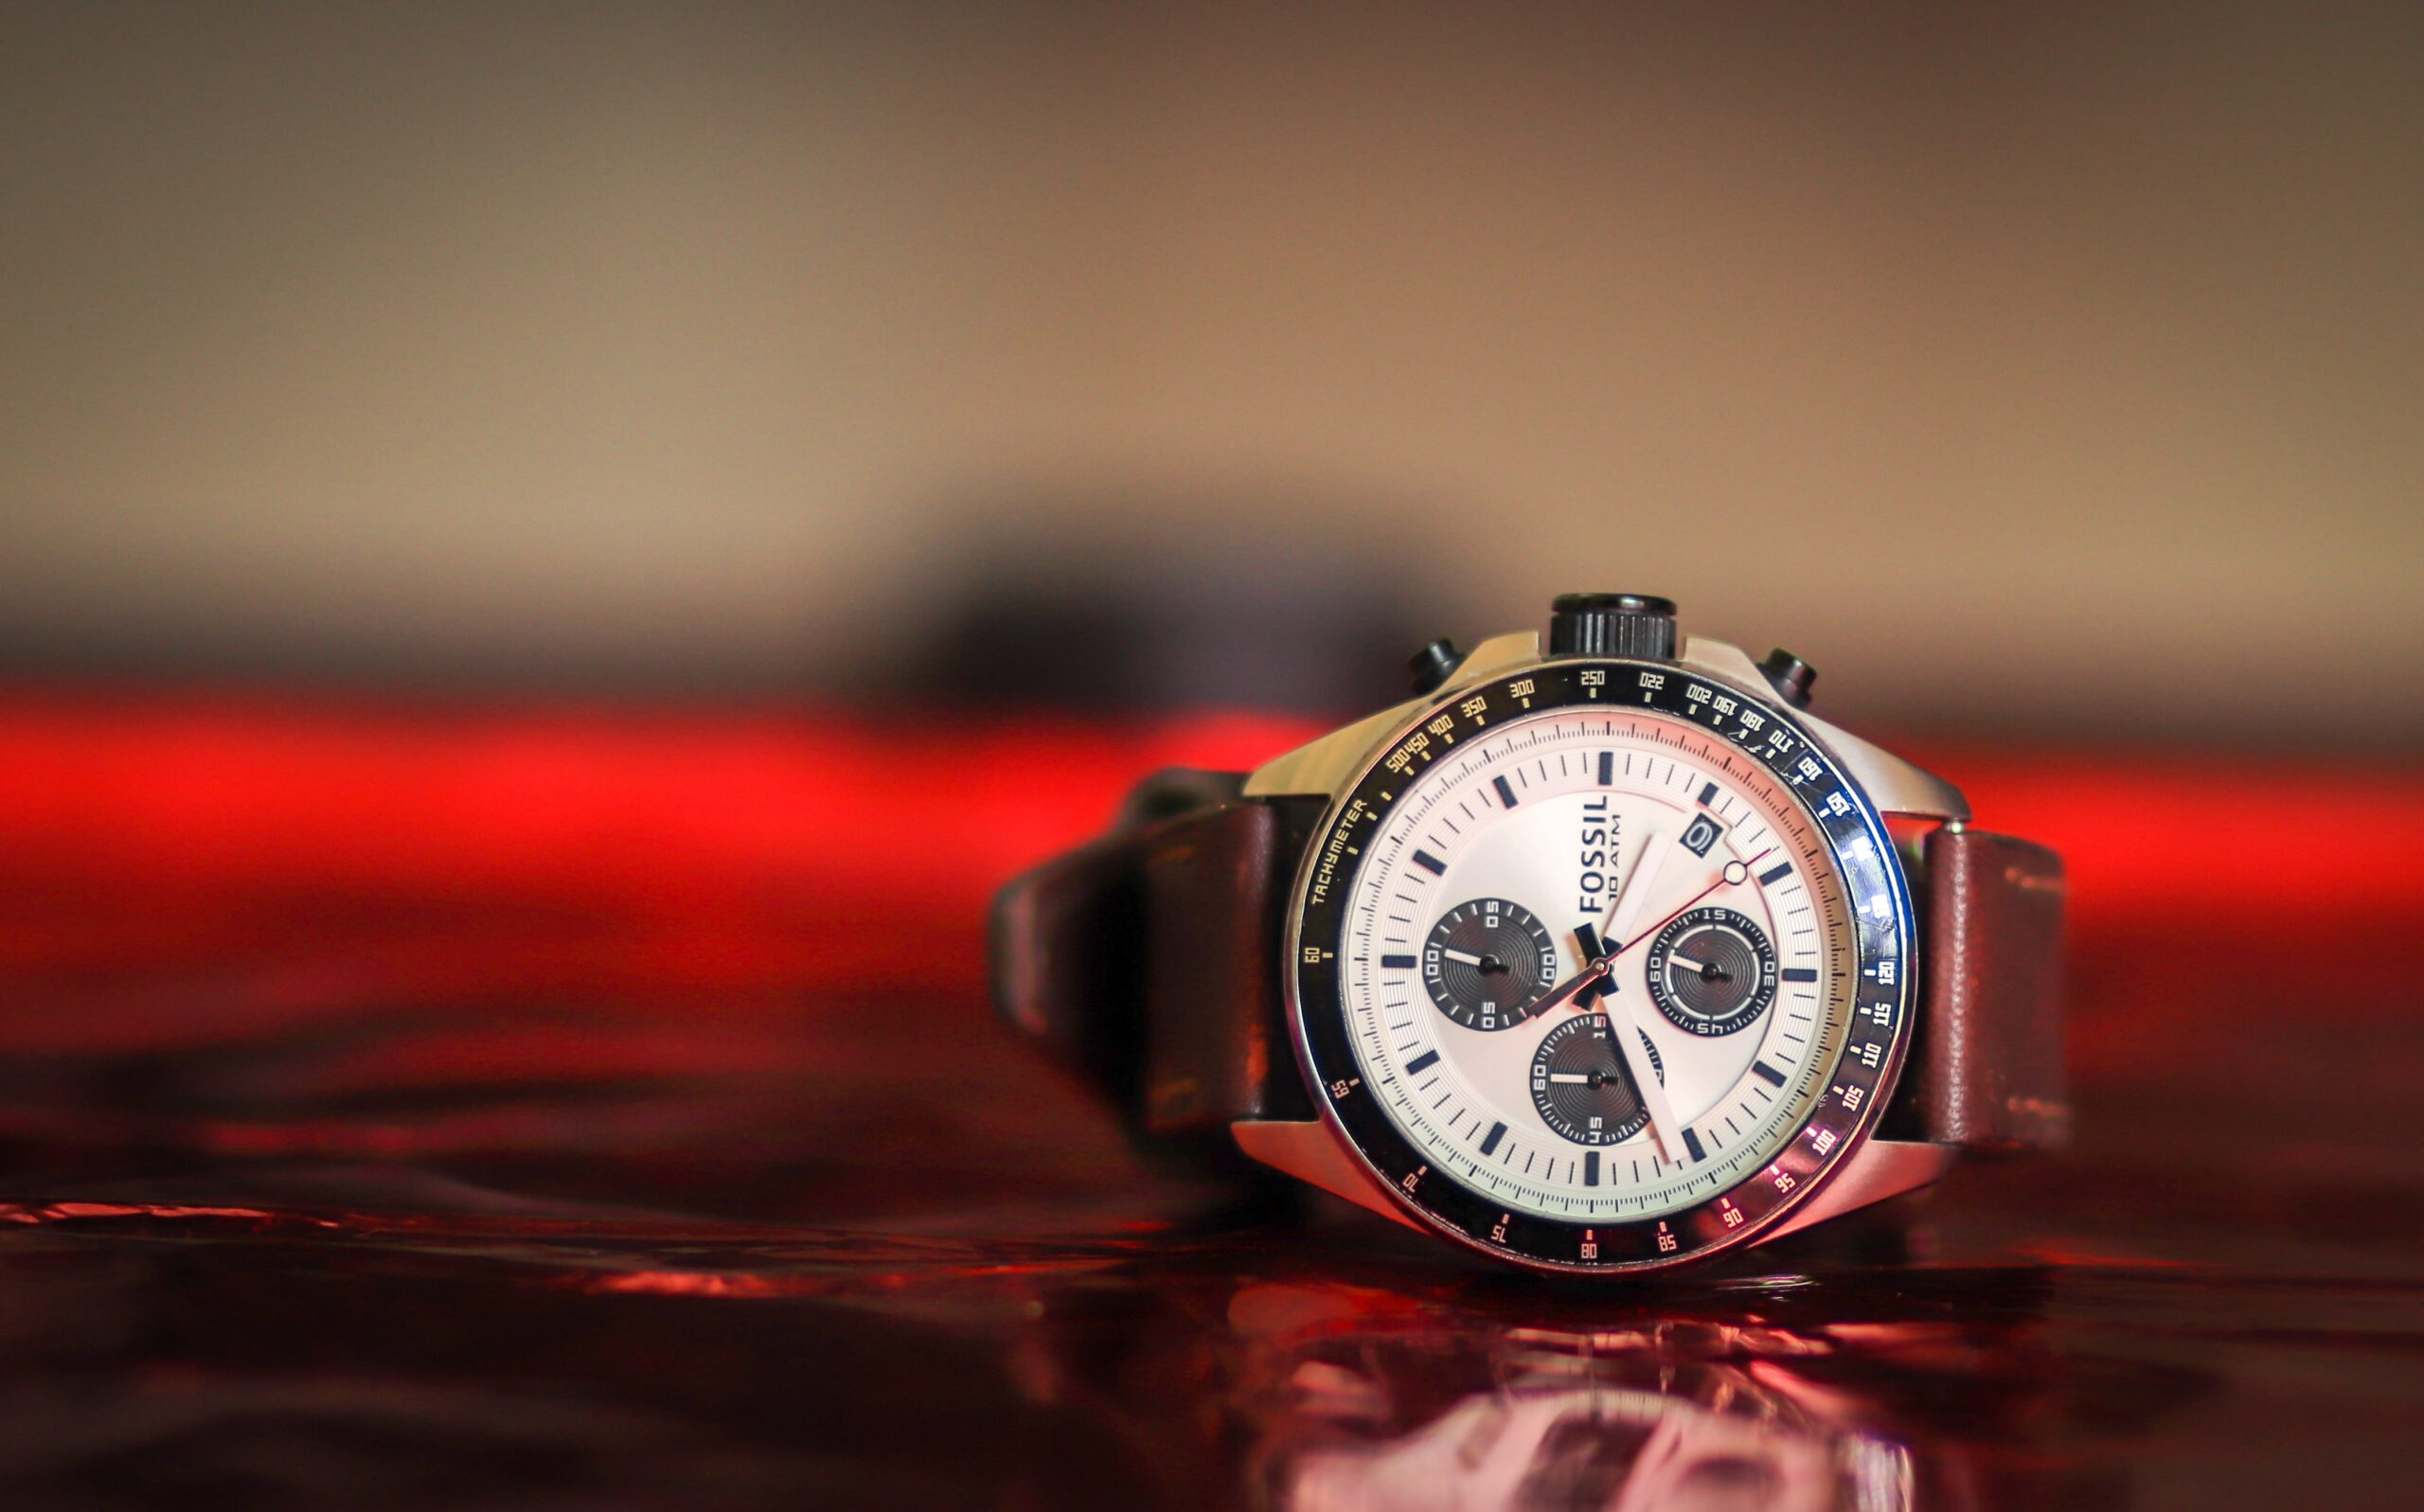 Buying a New Watch? Check Out These 4 Superior Breitling Timepieces